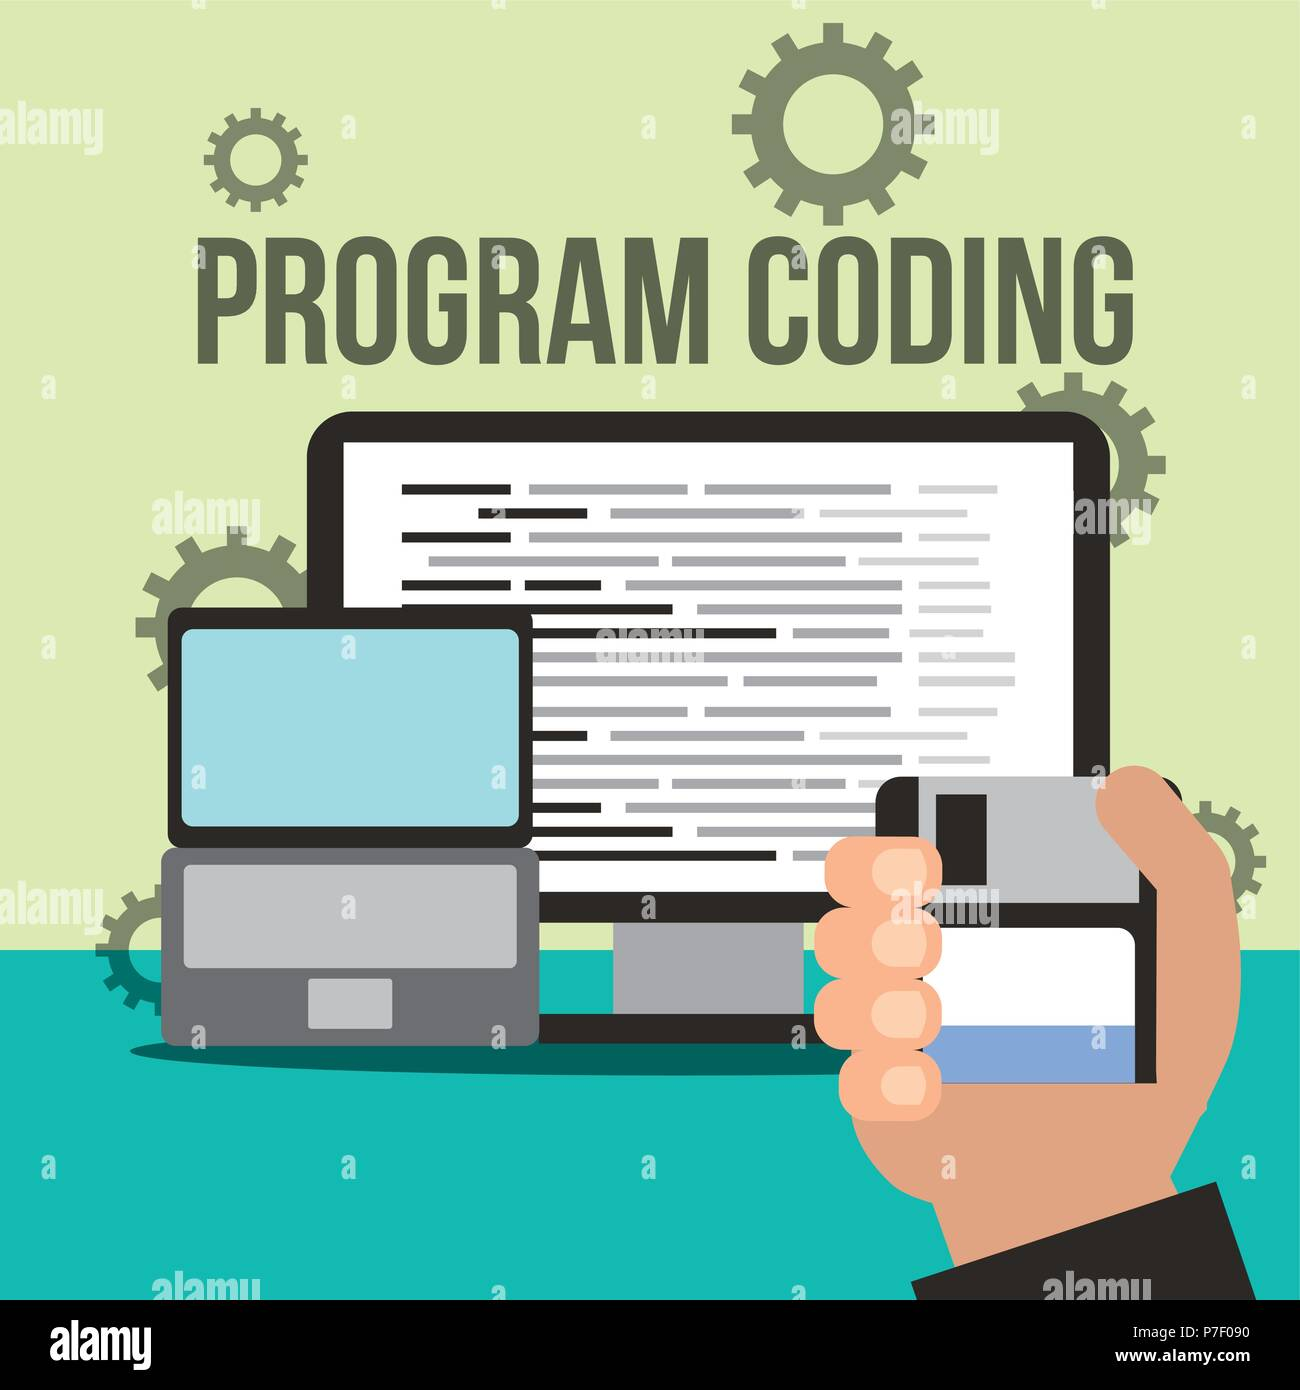 program coding website - Stock Image